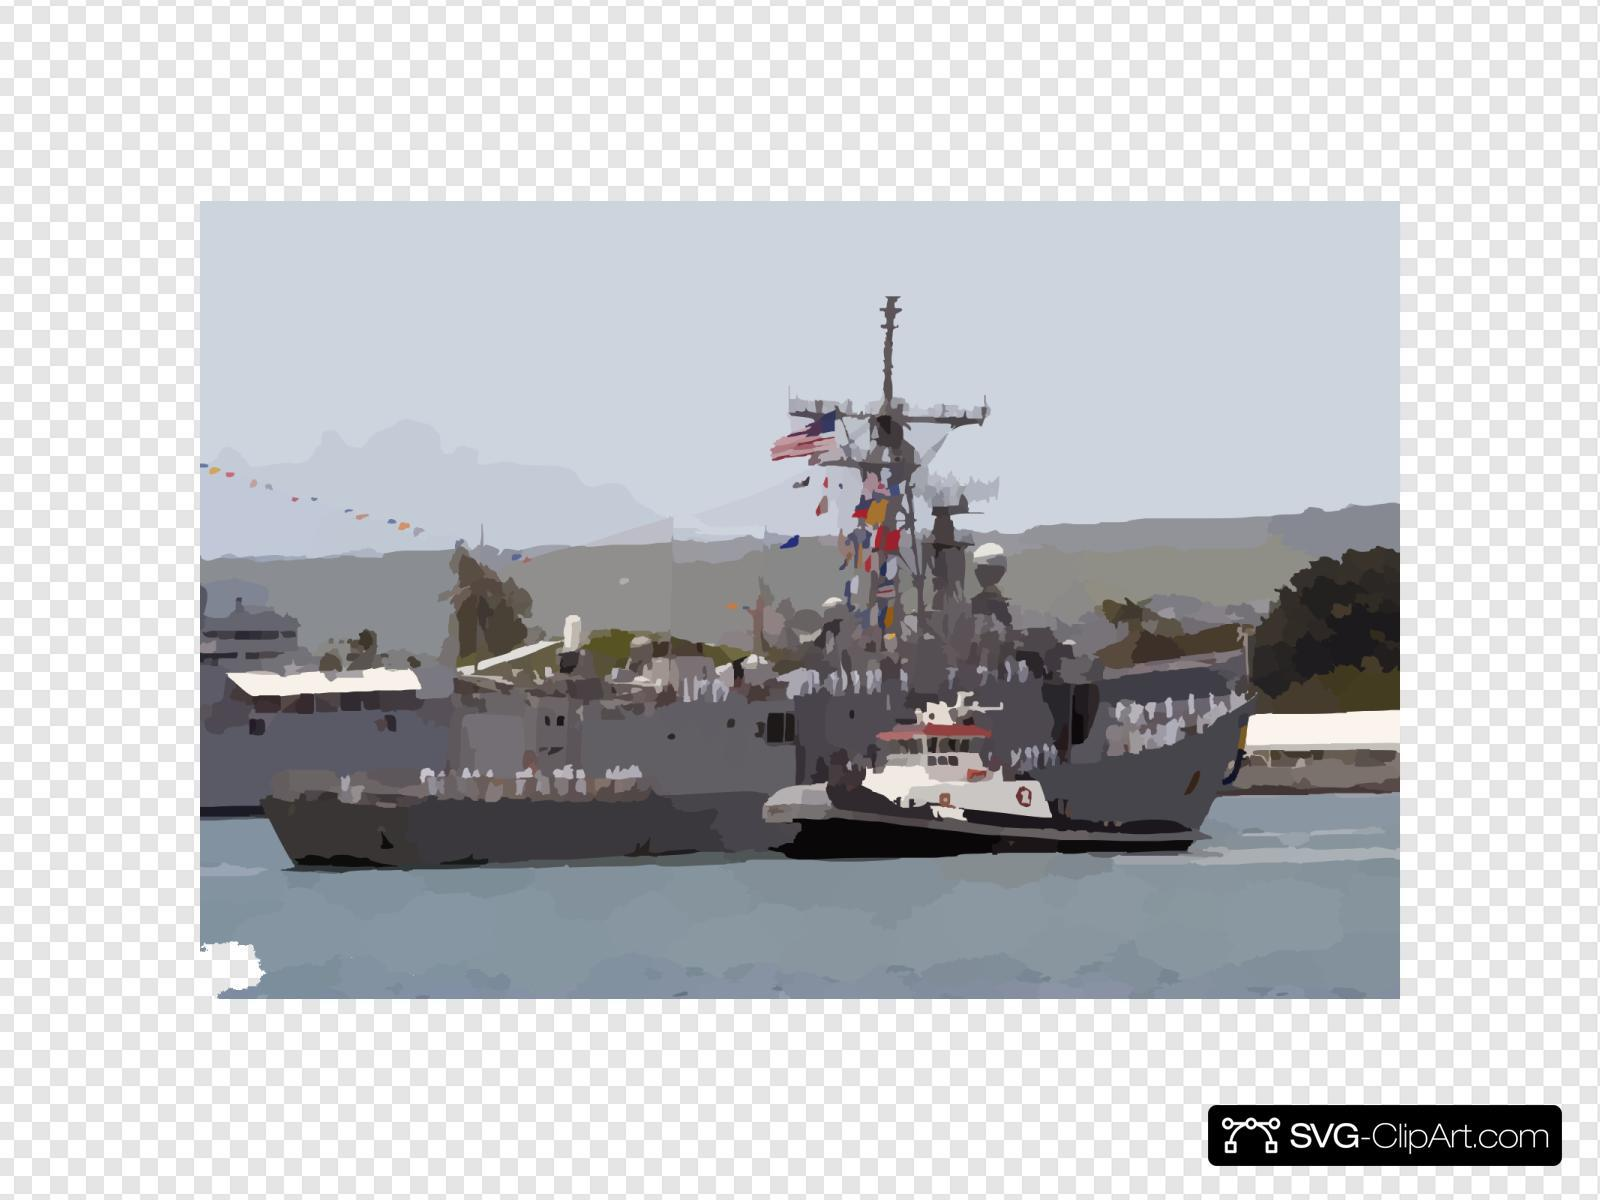 The Guided Missile Frigate Uss Reuben James (ffg 57) Returns To Her Homeport Pearl Harbor After A Deployment With The Uss Abraham Lincoln (cvn 72) Strike Force Spanning Nearly 10 Months